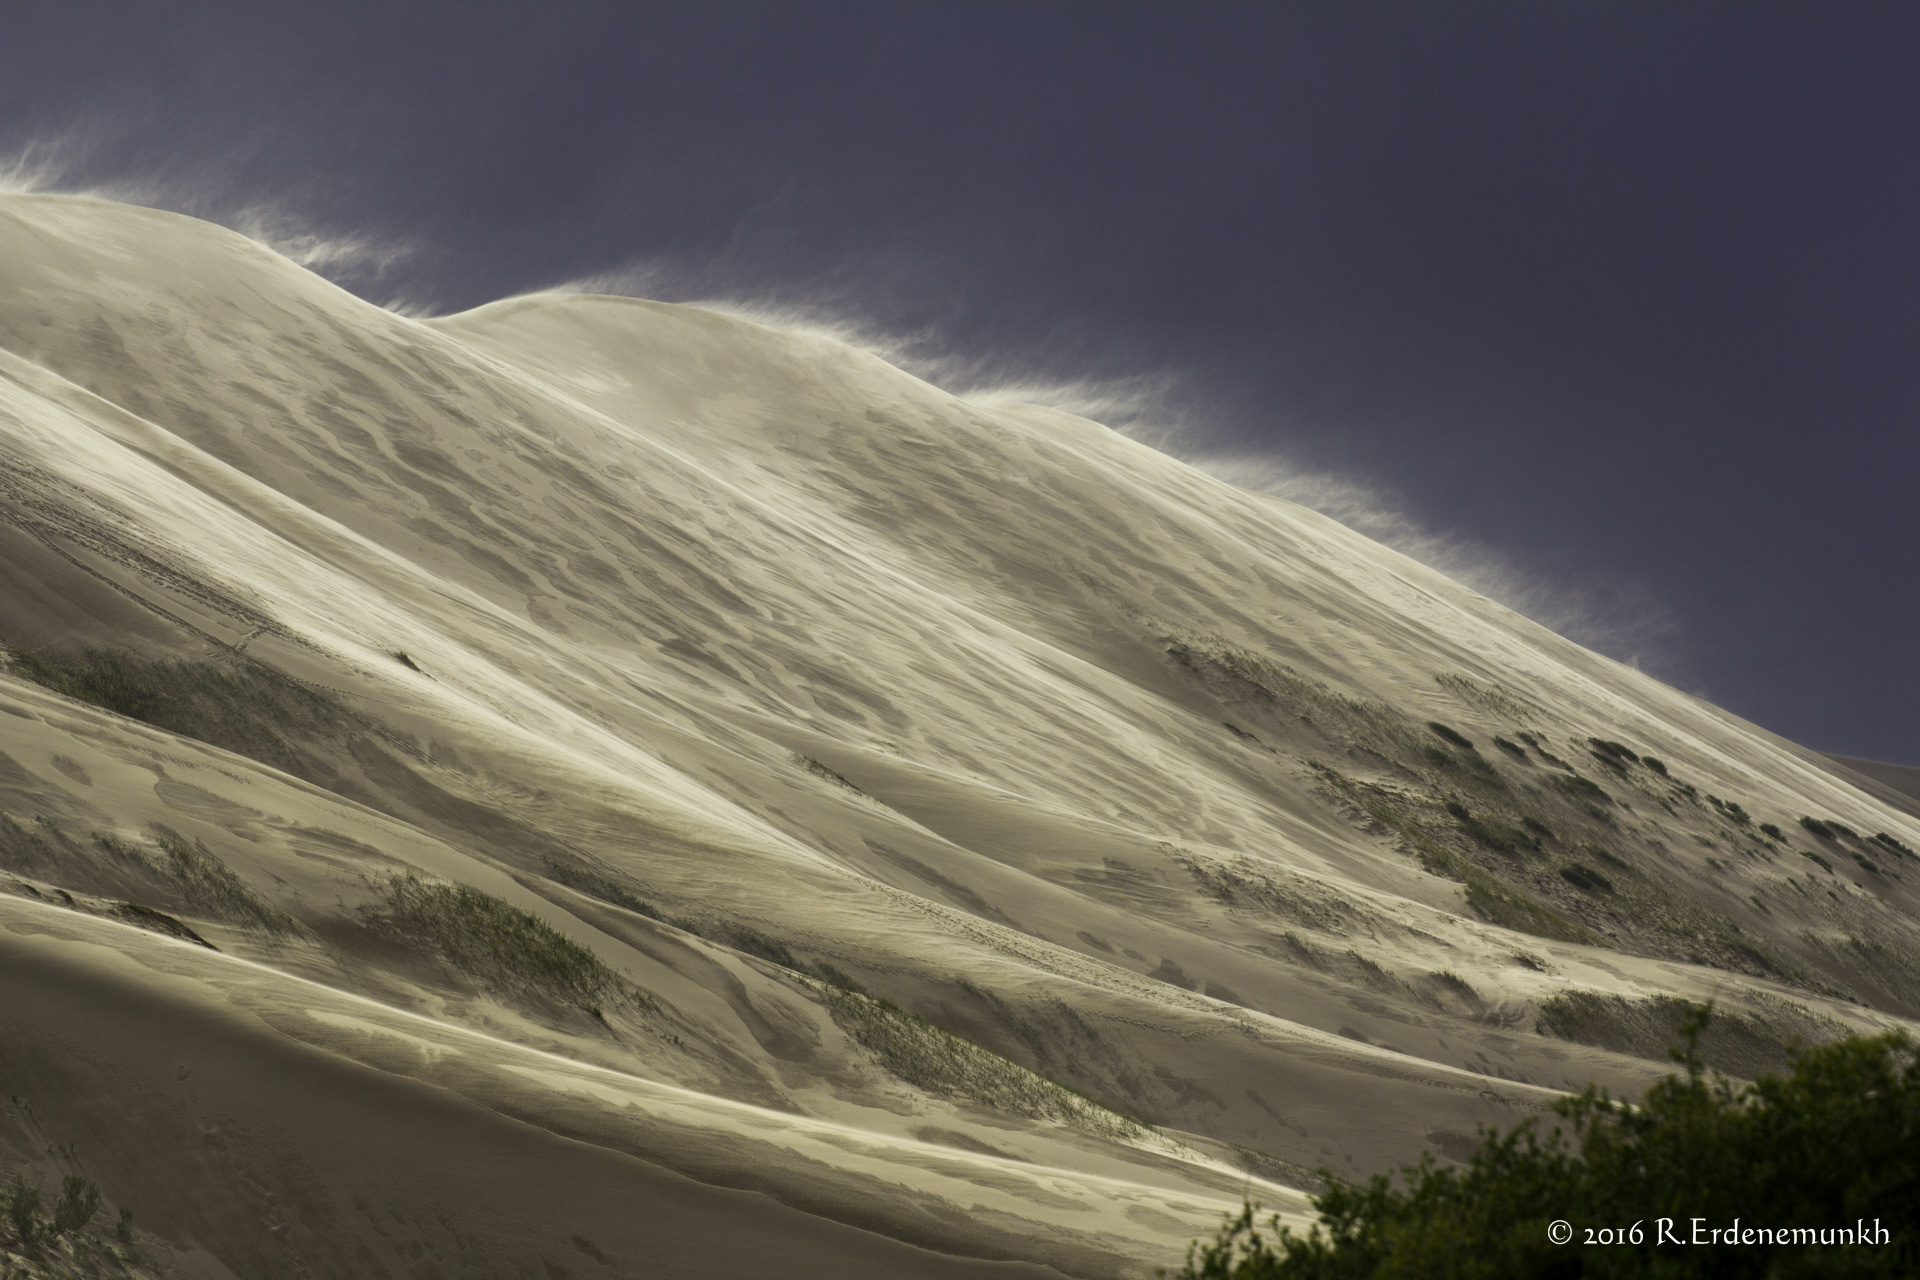 Sand dune before the rain